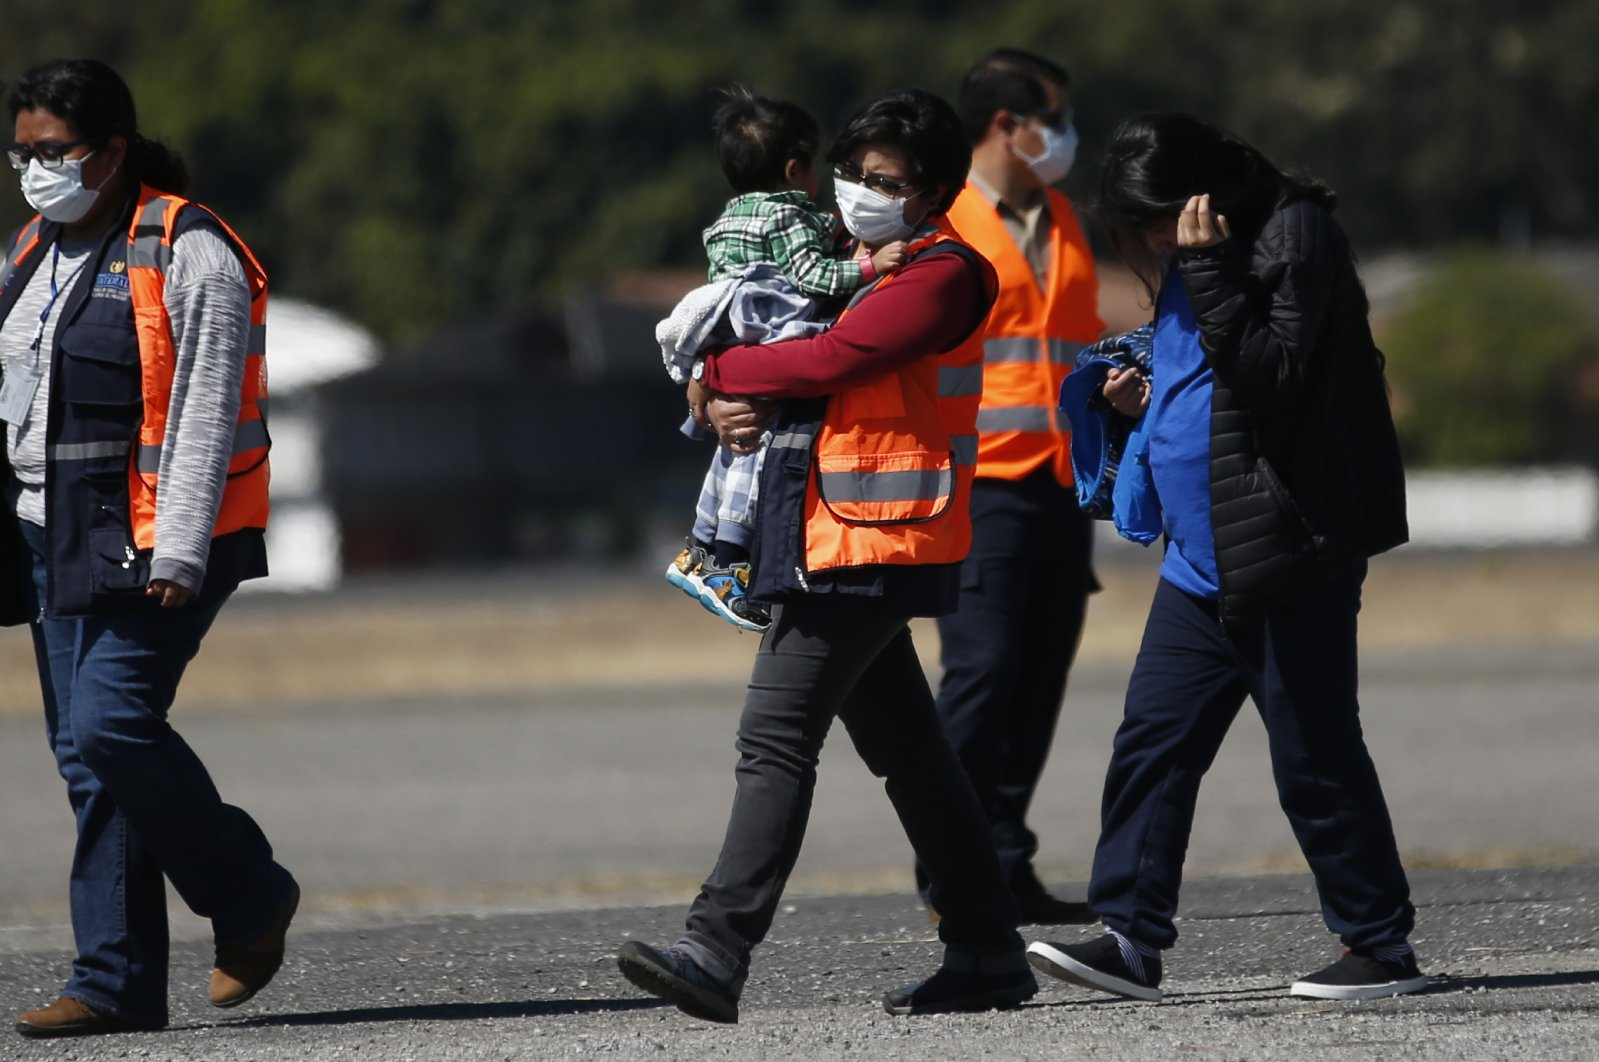 An immigration worker, wearing an orange jacket and a mask as a precaution against the coronavirus, carries a young Guatemalan migrant who was deported from the U.S., followed by another deportee, at La Aurora International Airport, Guatemala City, March 12, 2020. (AP Photo)